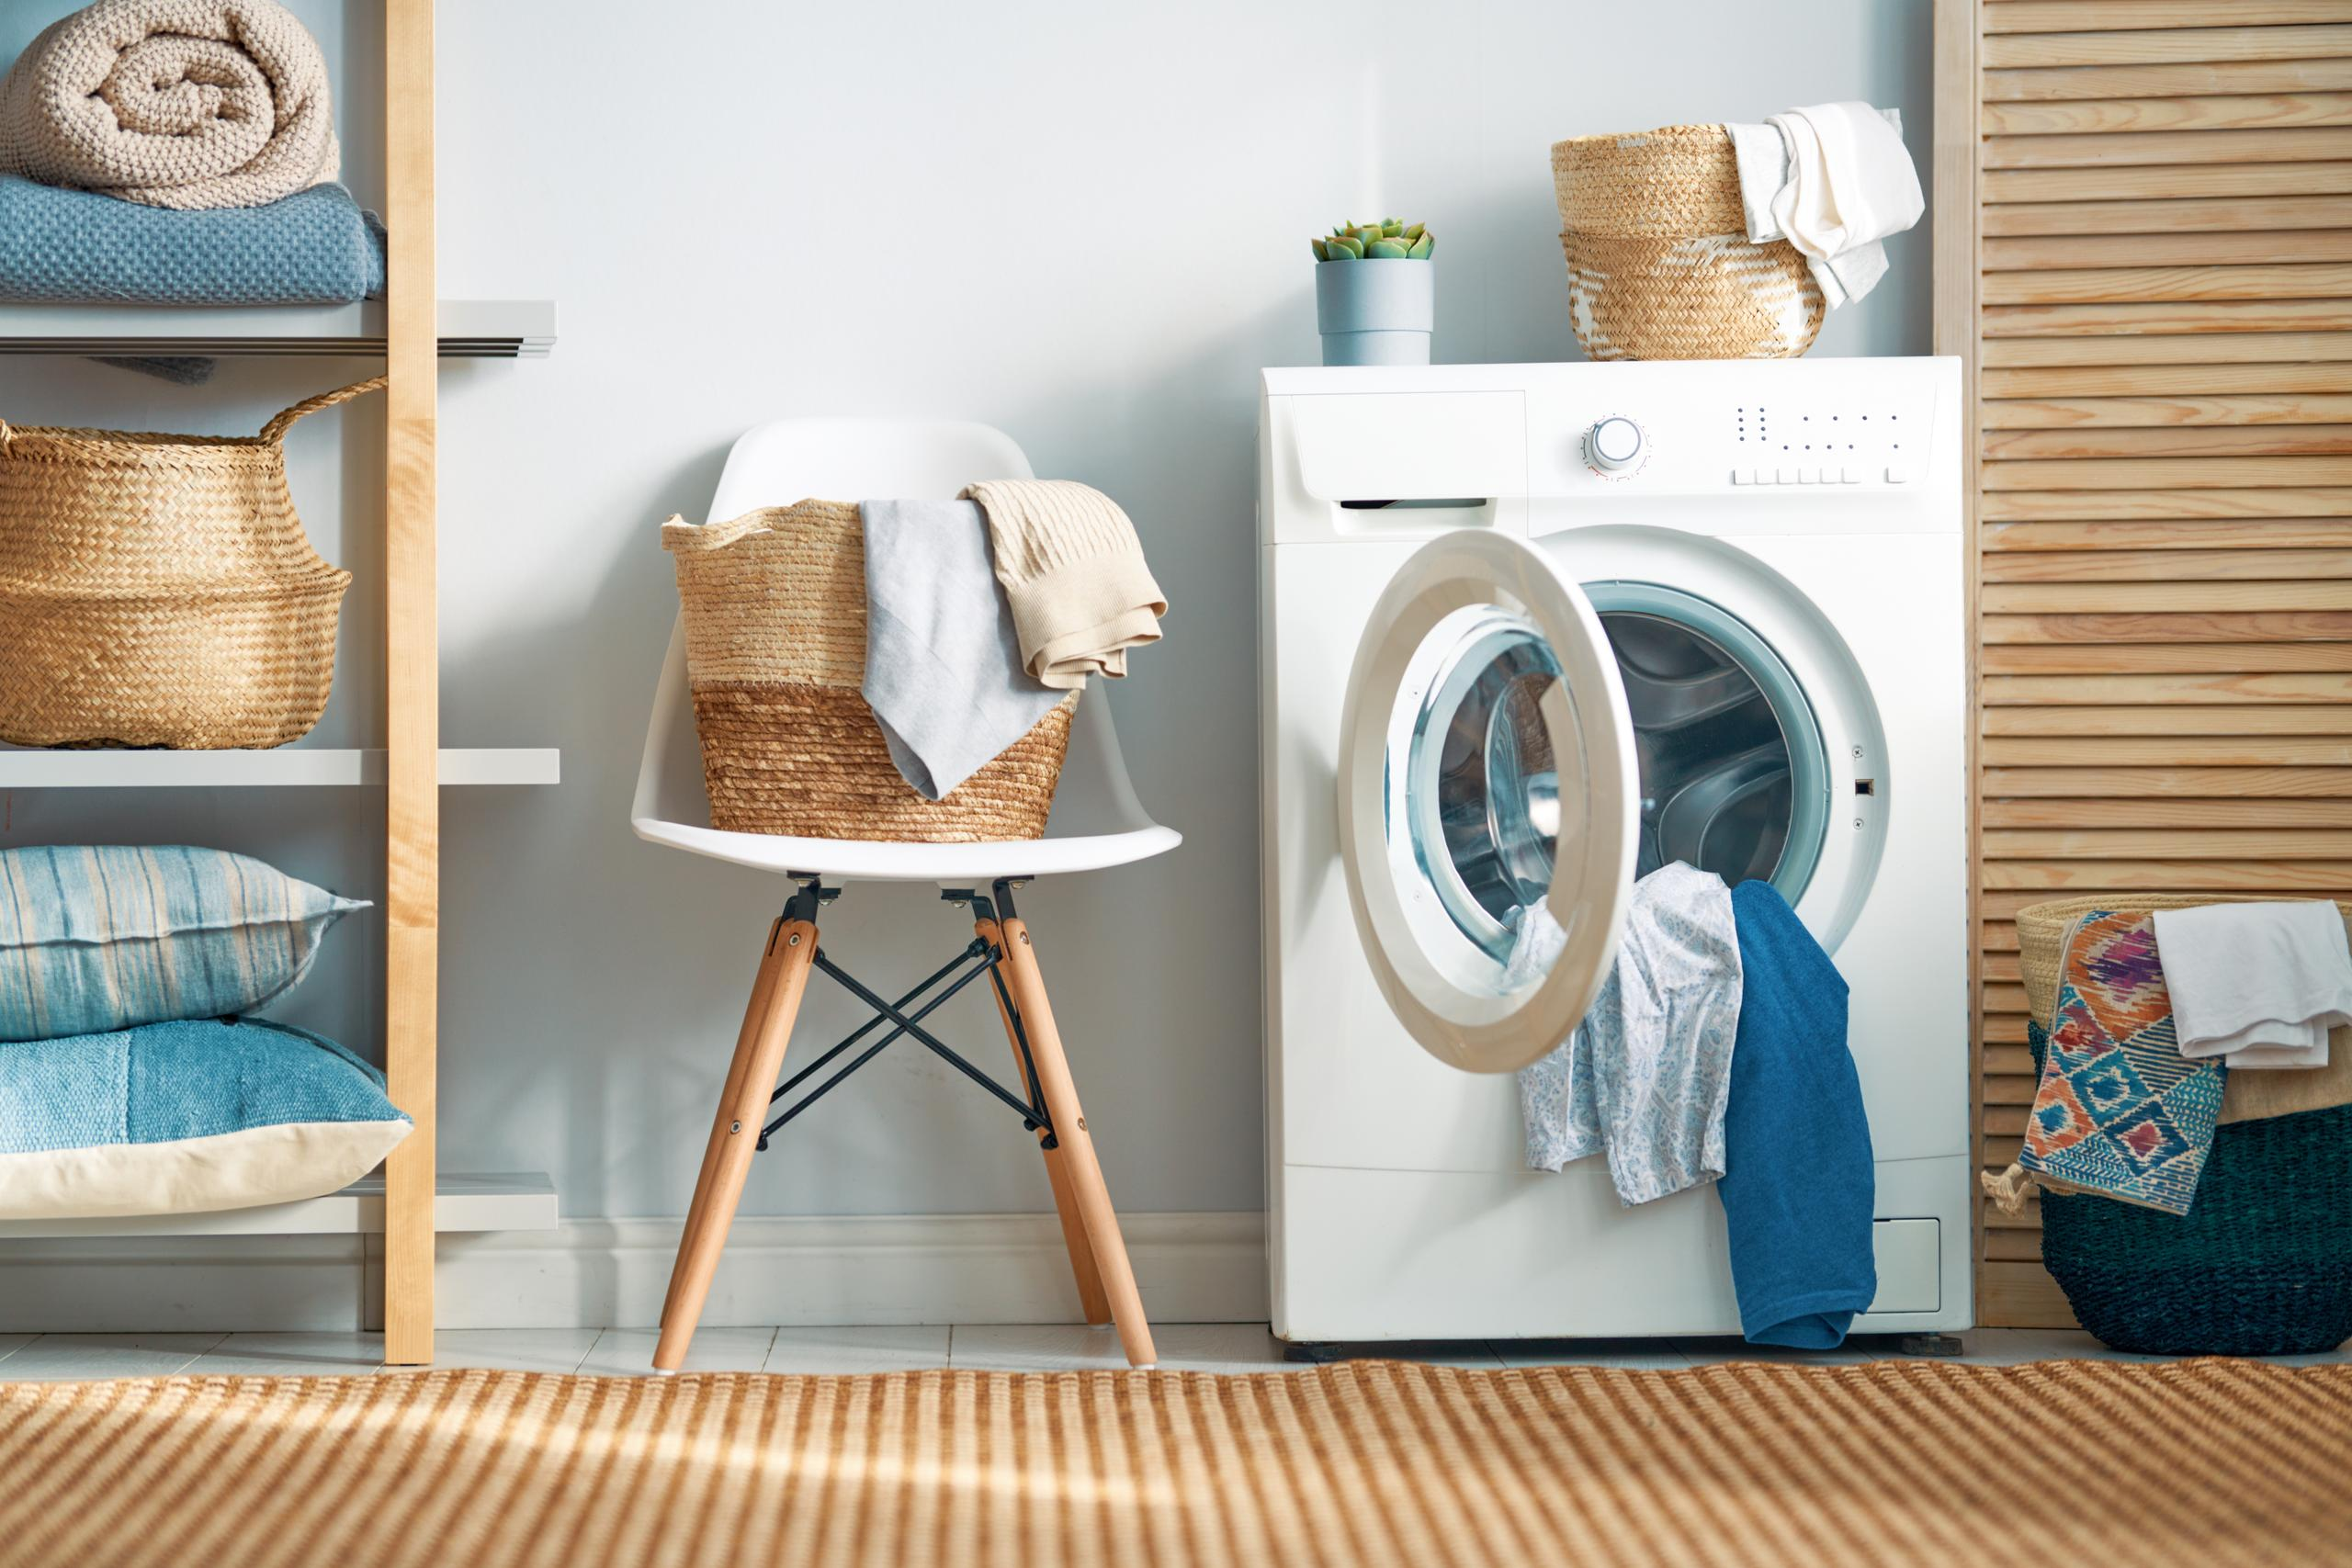 https://images.shipsmart.com/images/blog/large/moving-the-laundry-room.jpg?v=1.00